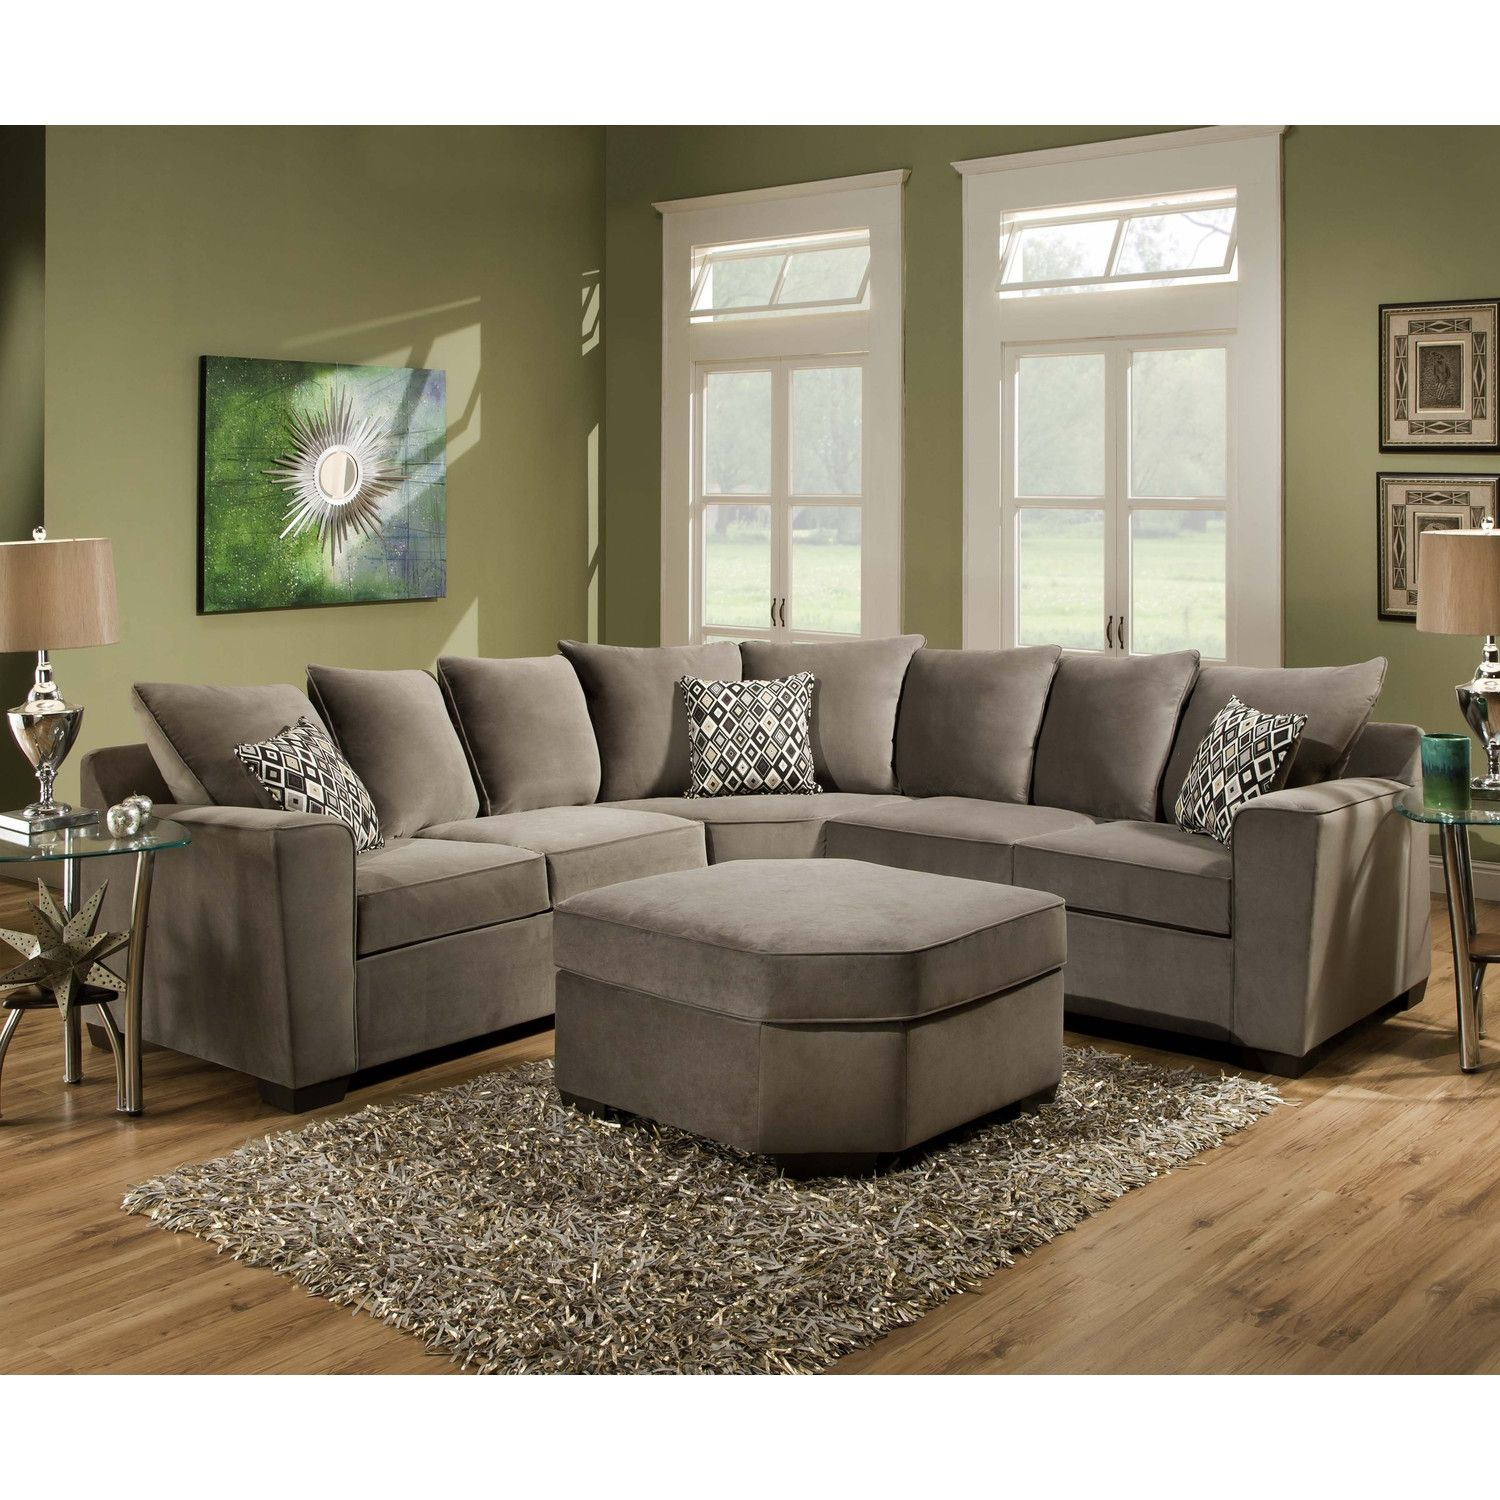 Plush Fabric Sectional Sofas